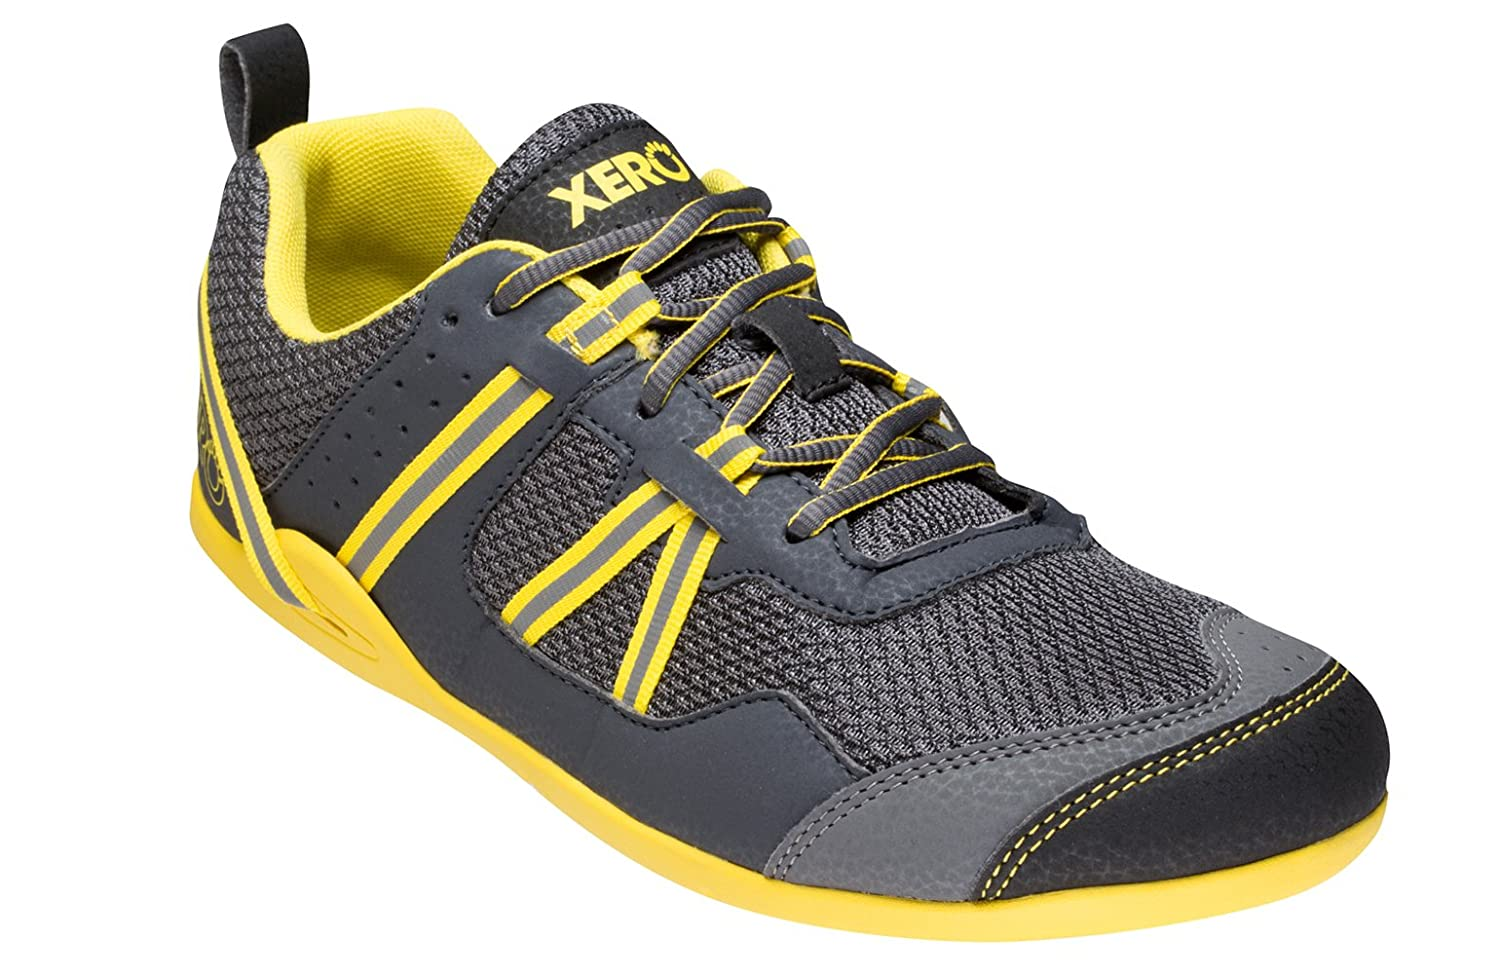 Xero Shoes Prio - Minimalist Barefoot Trail and Road Running Shoe - Fitness, Athletic Zero Drop Sneaker - Men's B071XRX82V 8 D(M) US|True Yellow